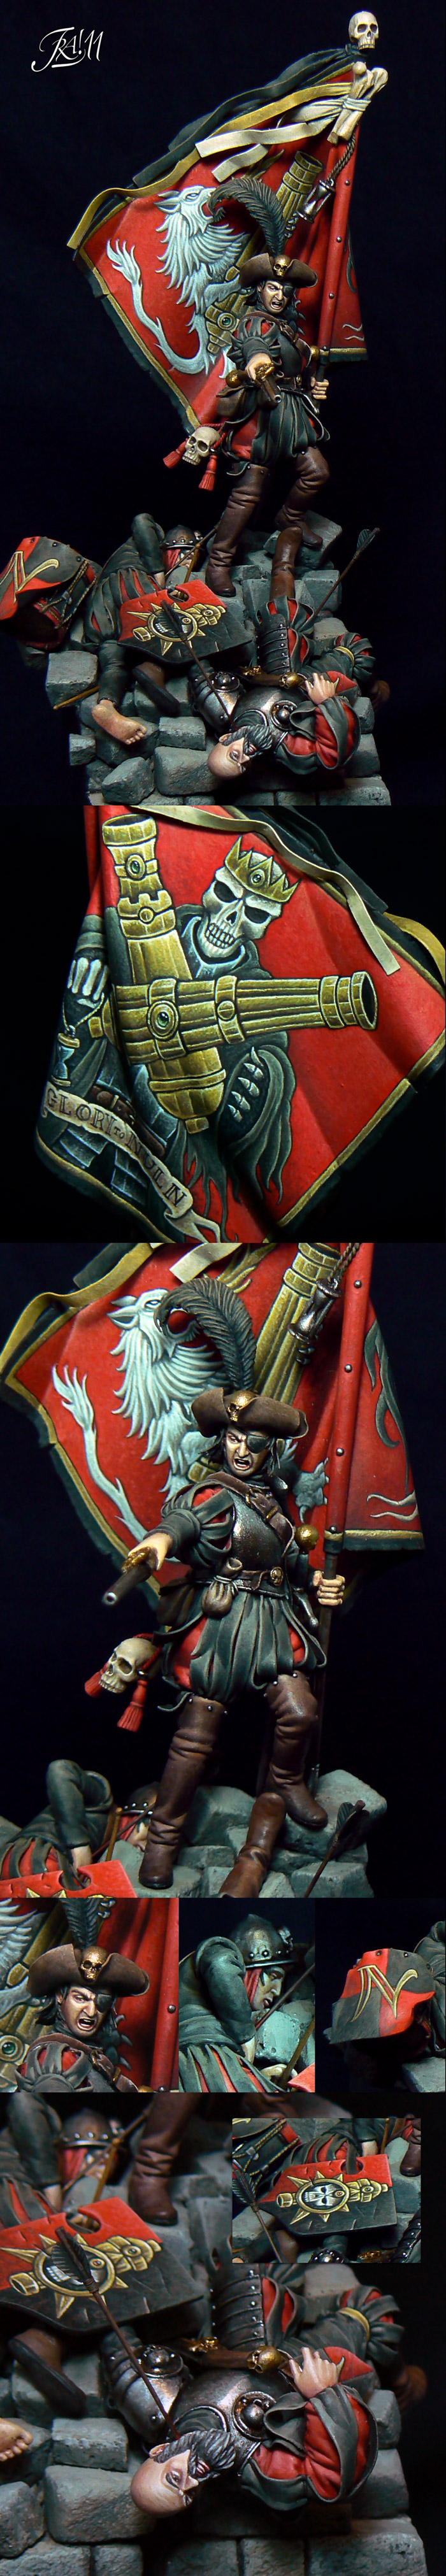 Last Stand of Nuln (Gold Diorami - italian GD 2011) Img.2 (details)